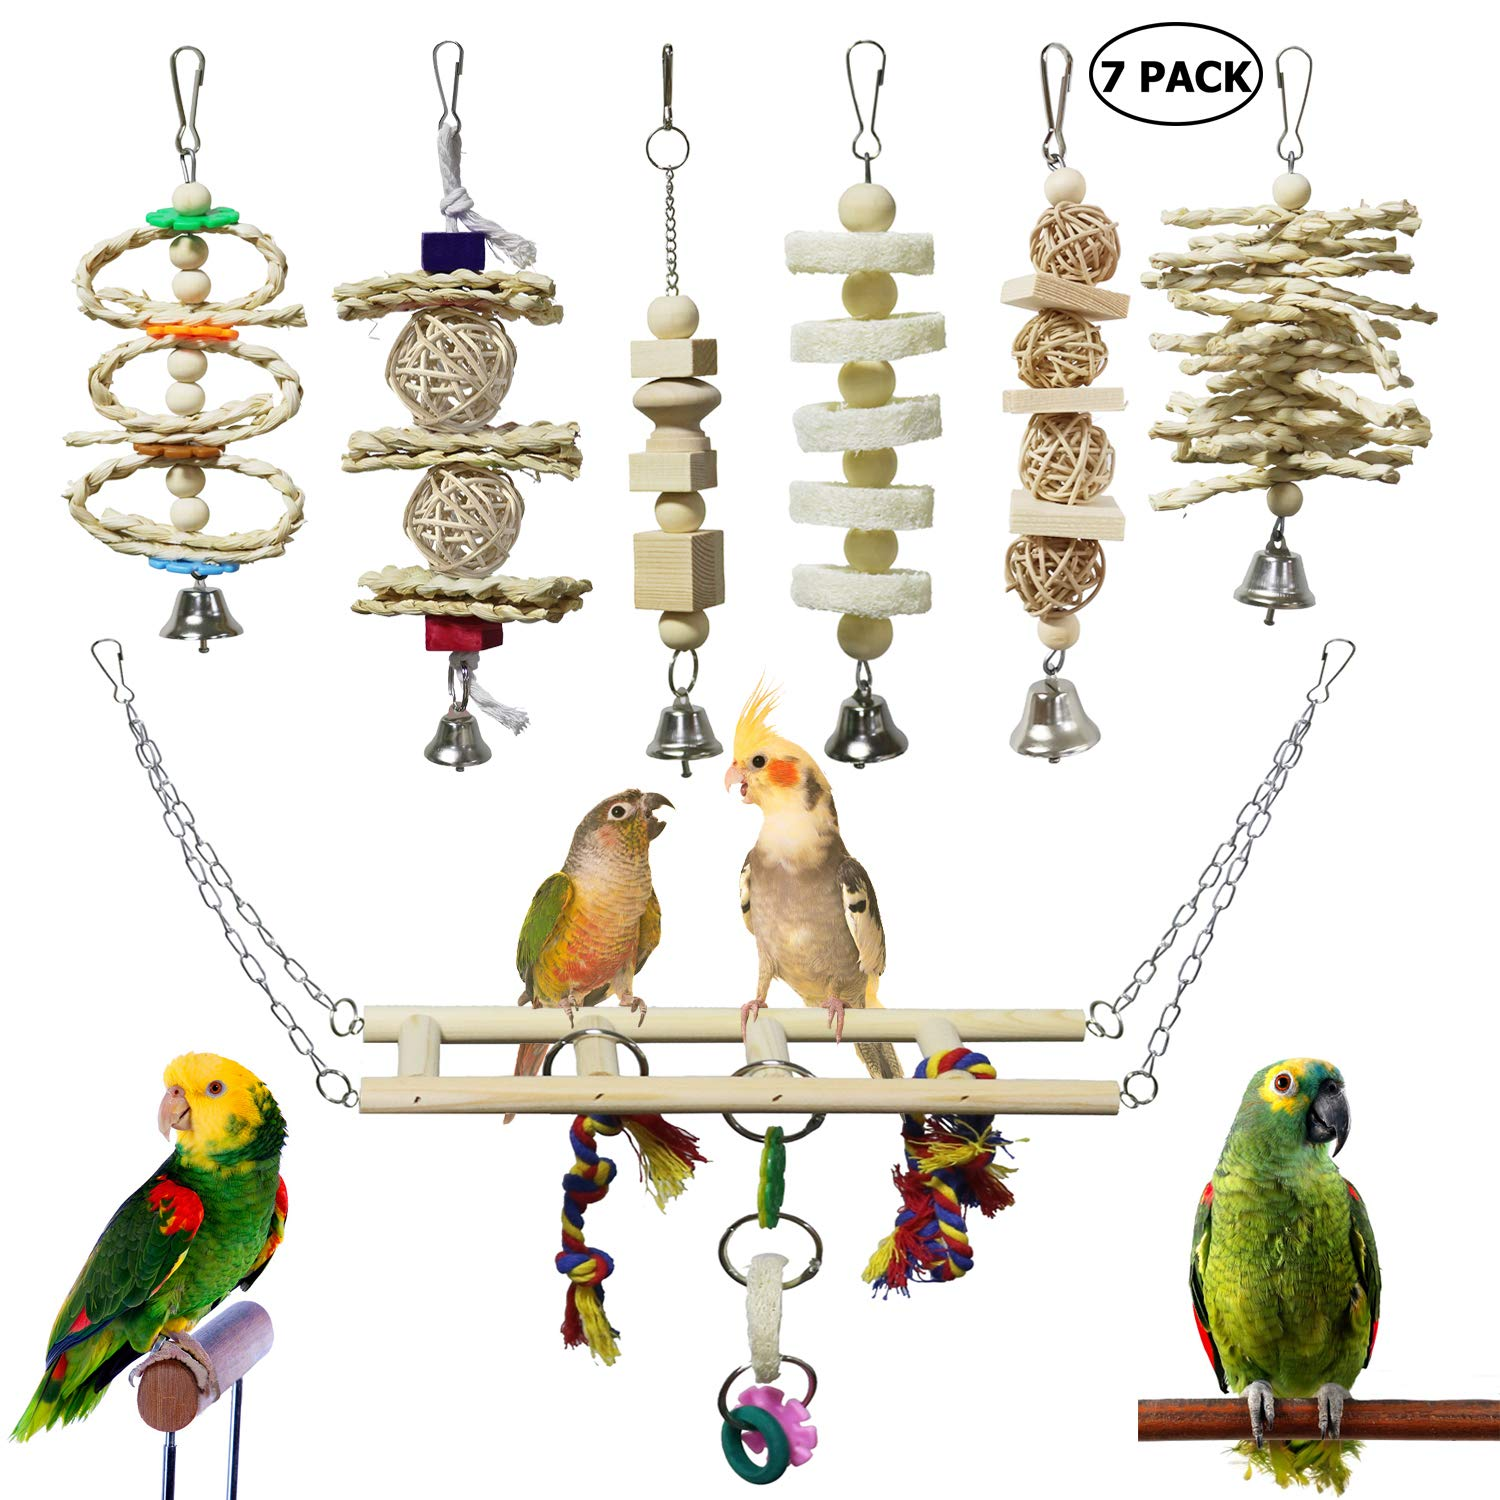 BWOGUE 7 Packs Bird Parrot Toys Natural Wood Chewing Toy Bird Cage Toys Hanging Swing Hammock Climbing Ladders Toys for Small Parakeets, Cockatiels, Conures, Finches,Budgie, Parrots, Love Birds by BWOGUE